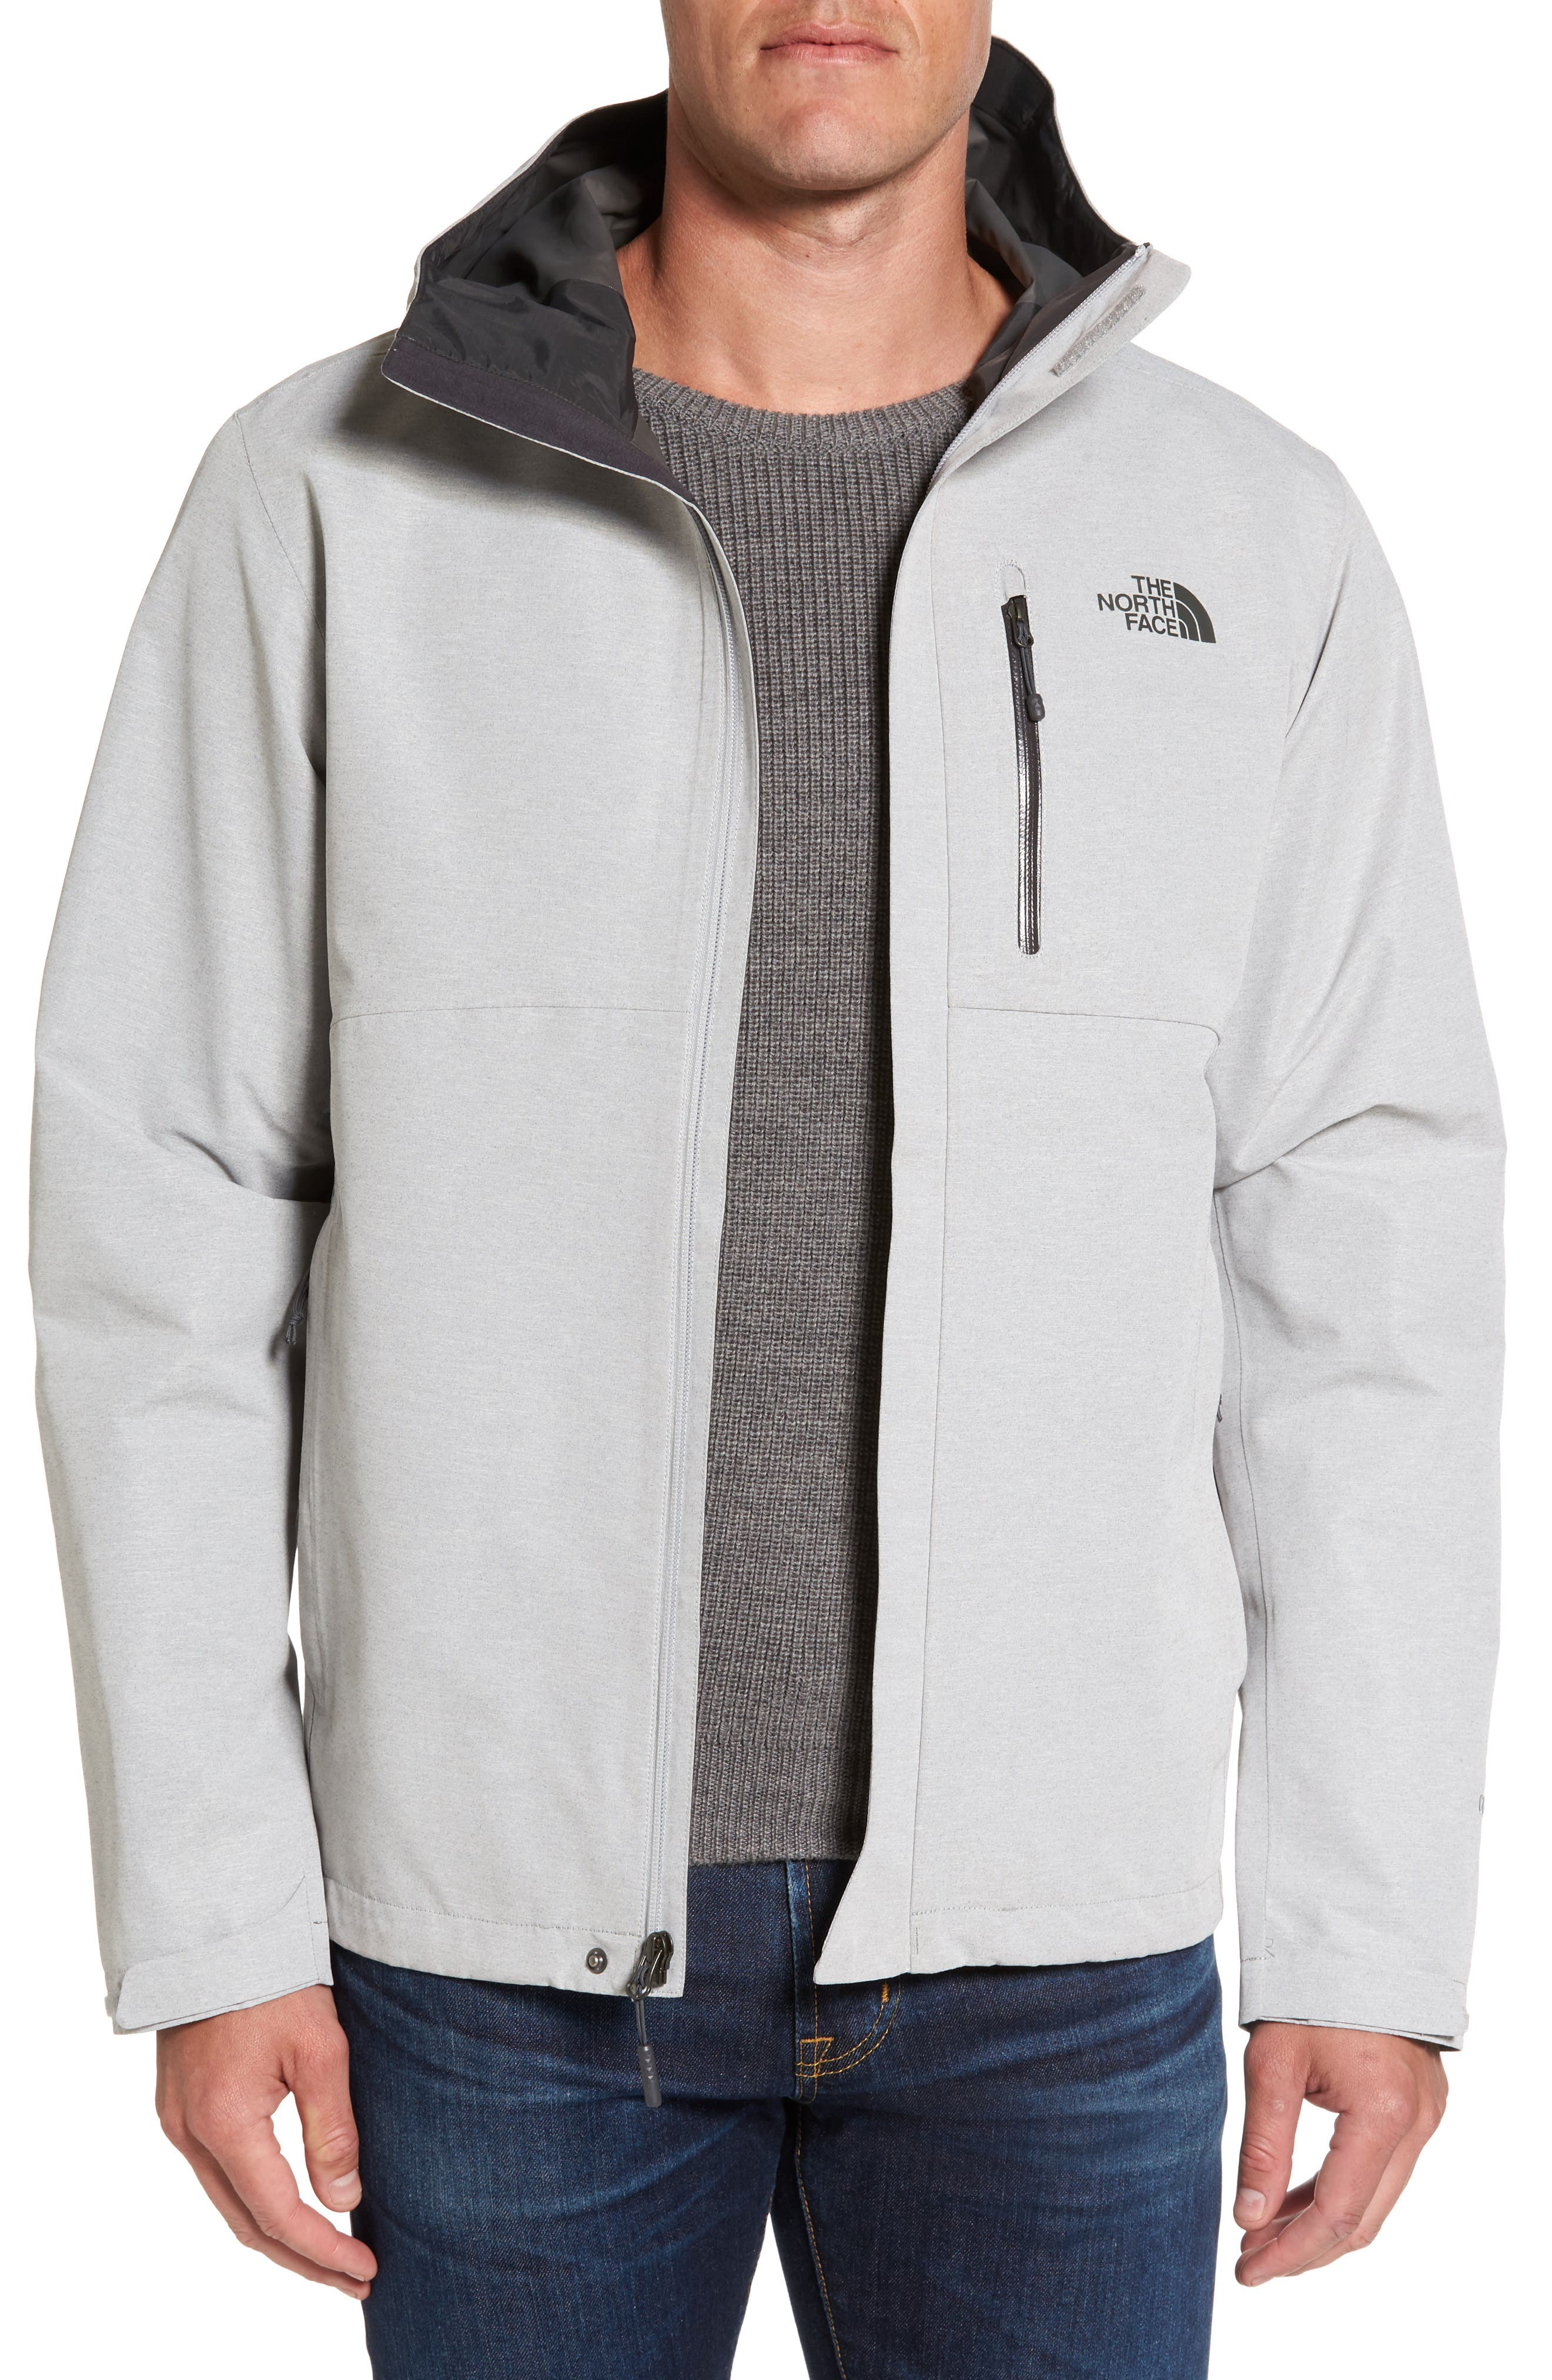 Main Image - The North Face Dryzzle Gore-Tex® PacLite Hooded Jacket